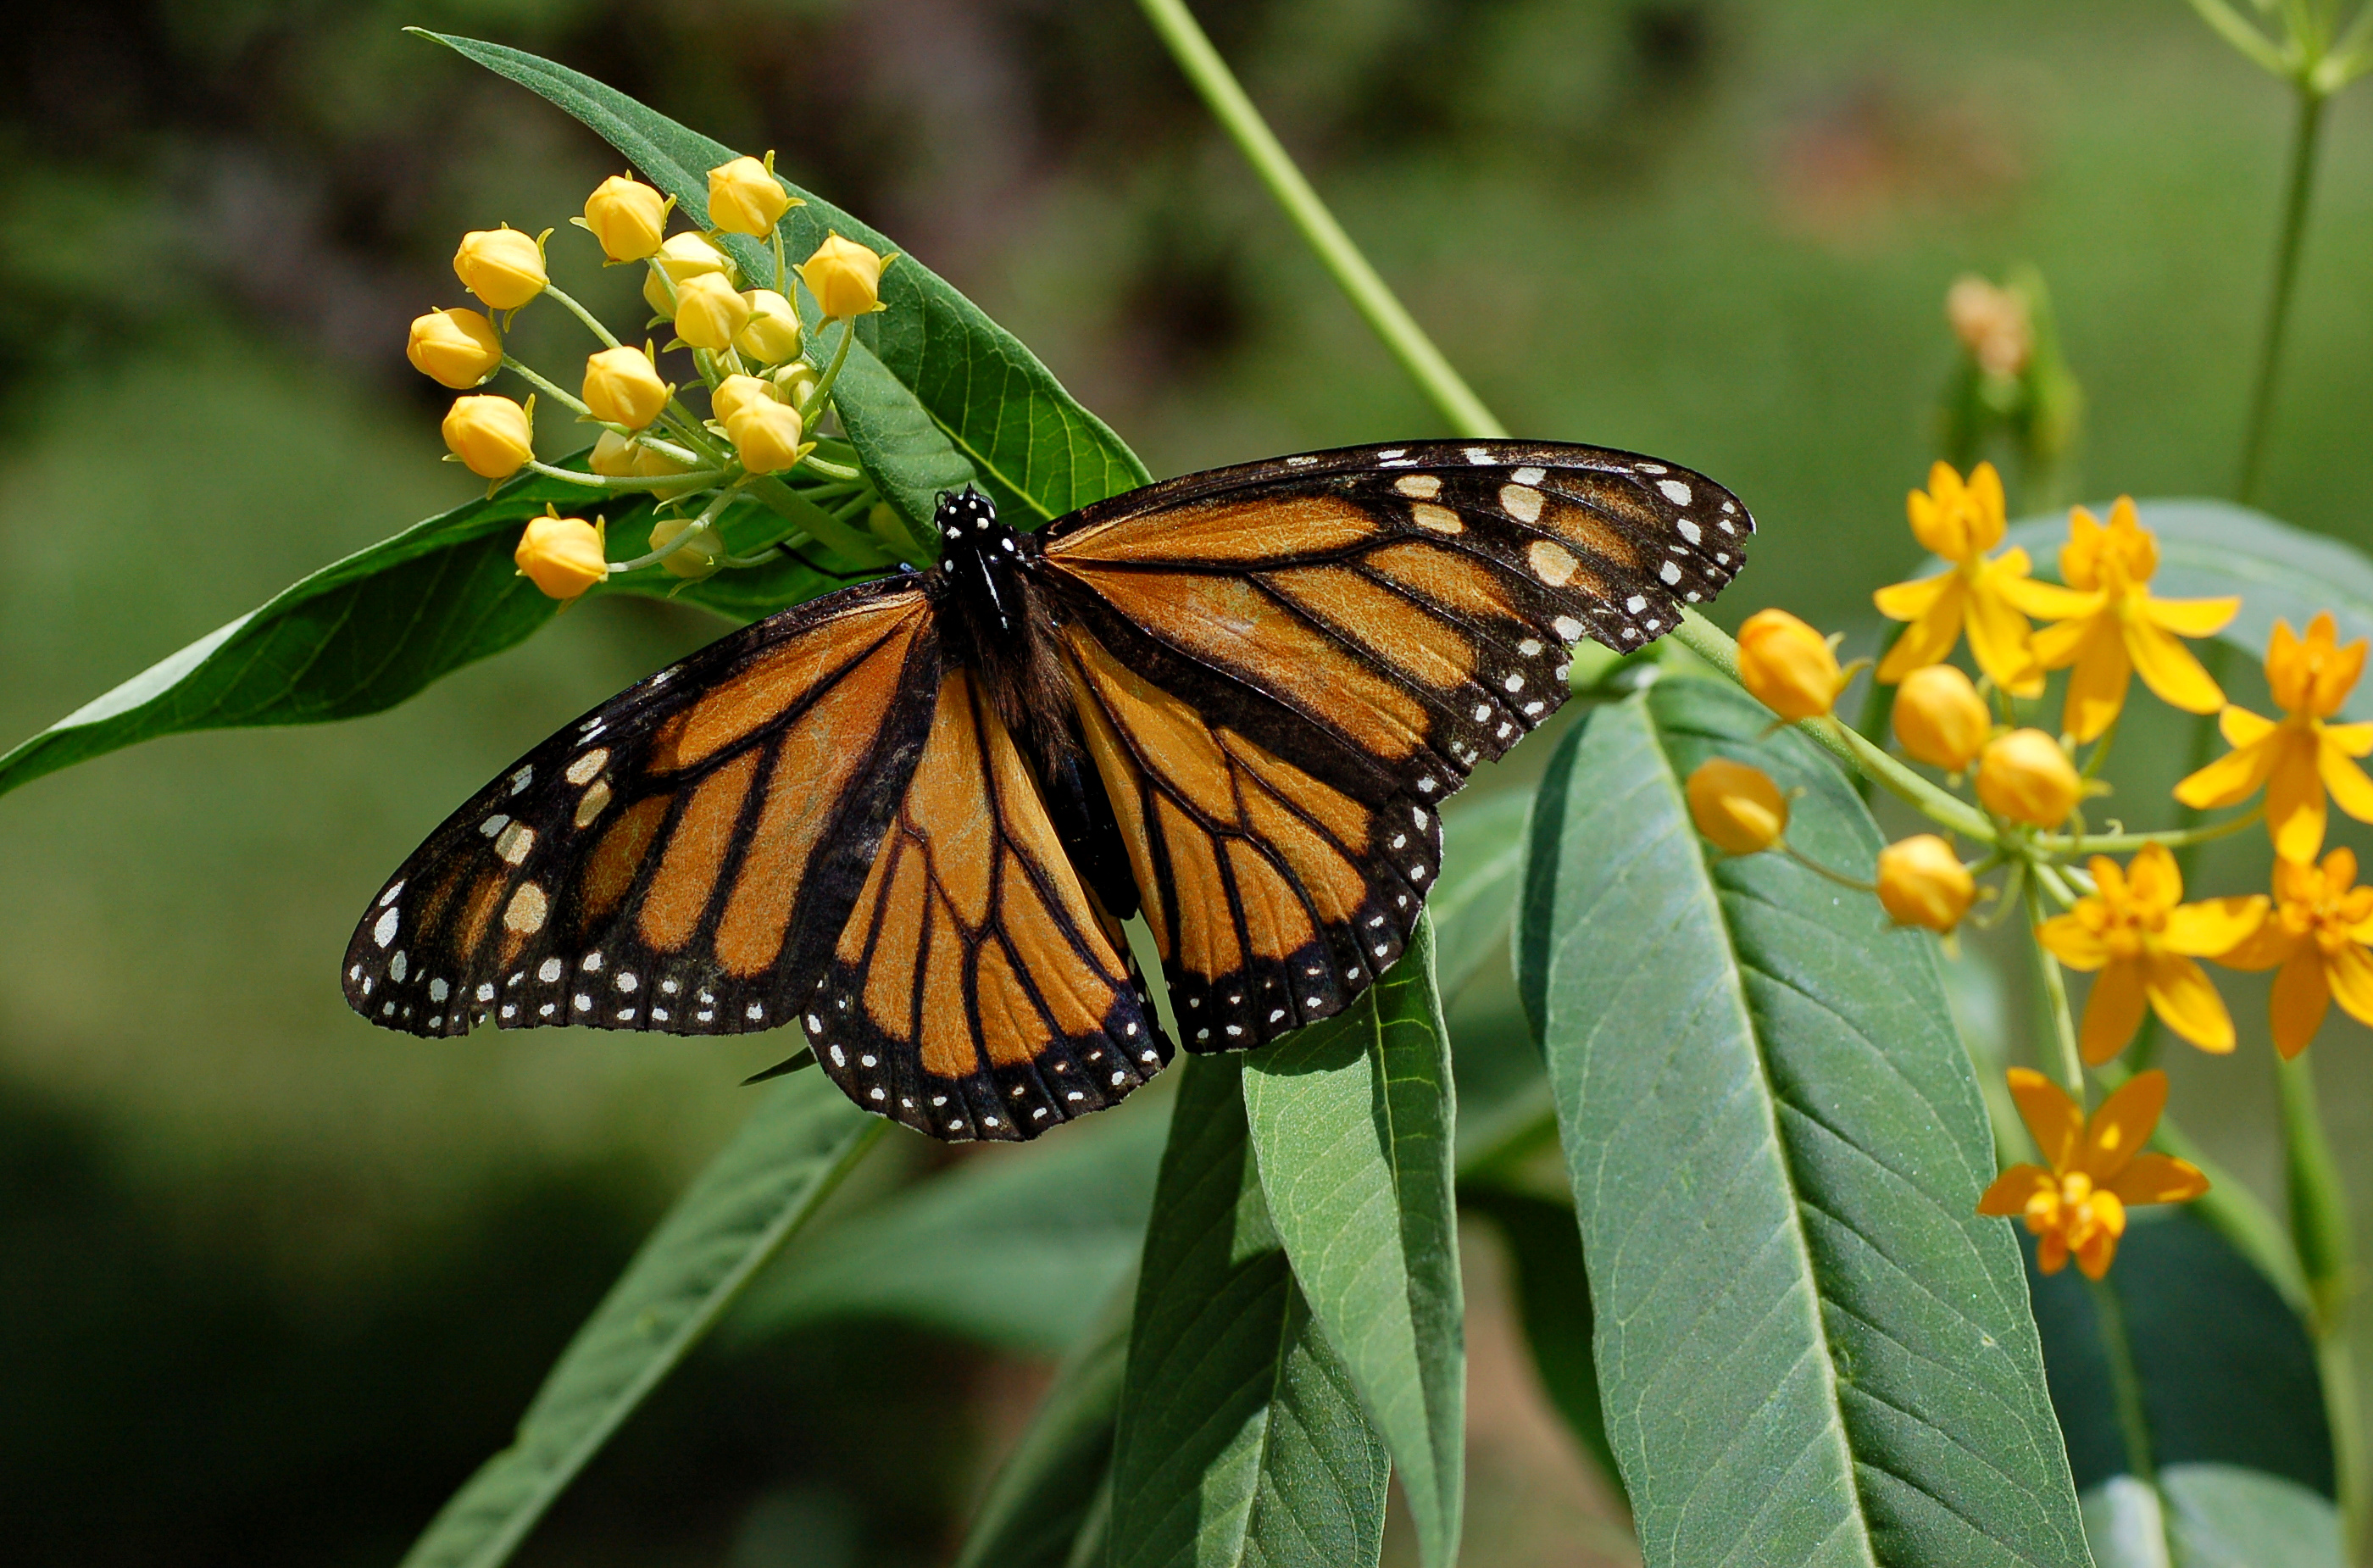 Monarch Butterfly Wallpaper wallpaper Monarch Butterfly Wallpaper hd 2800x1850